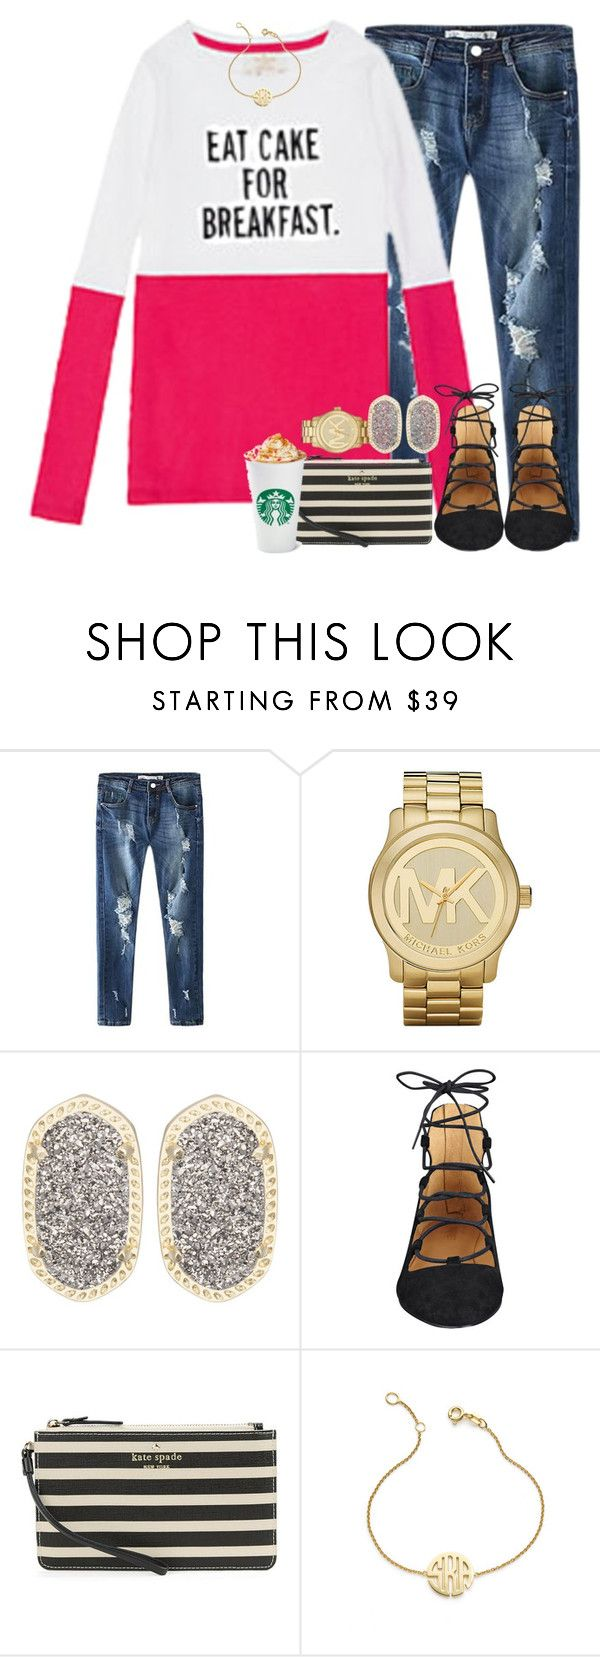 """""""current//mood"""" by sydneylawsonn ❤ liked on Polyvore featuring ComeForBreakfast, Michael Kors, Kendra Scott, Nine West, Kate Spade, Sarah Chloe, women's clothing, women's fashion, women and female"""